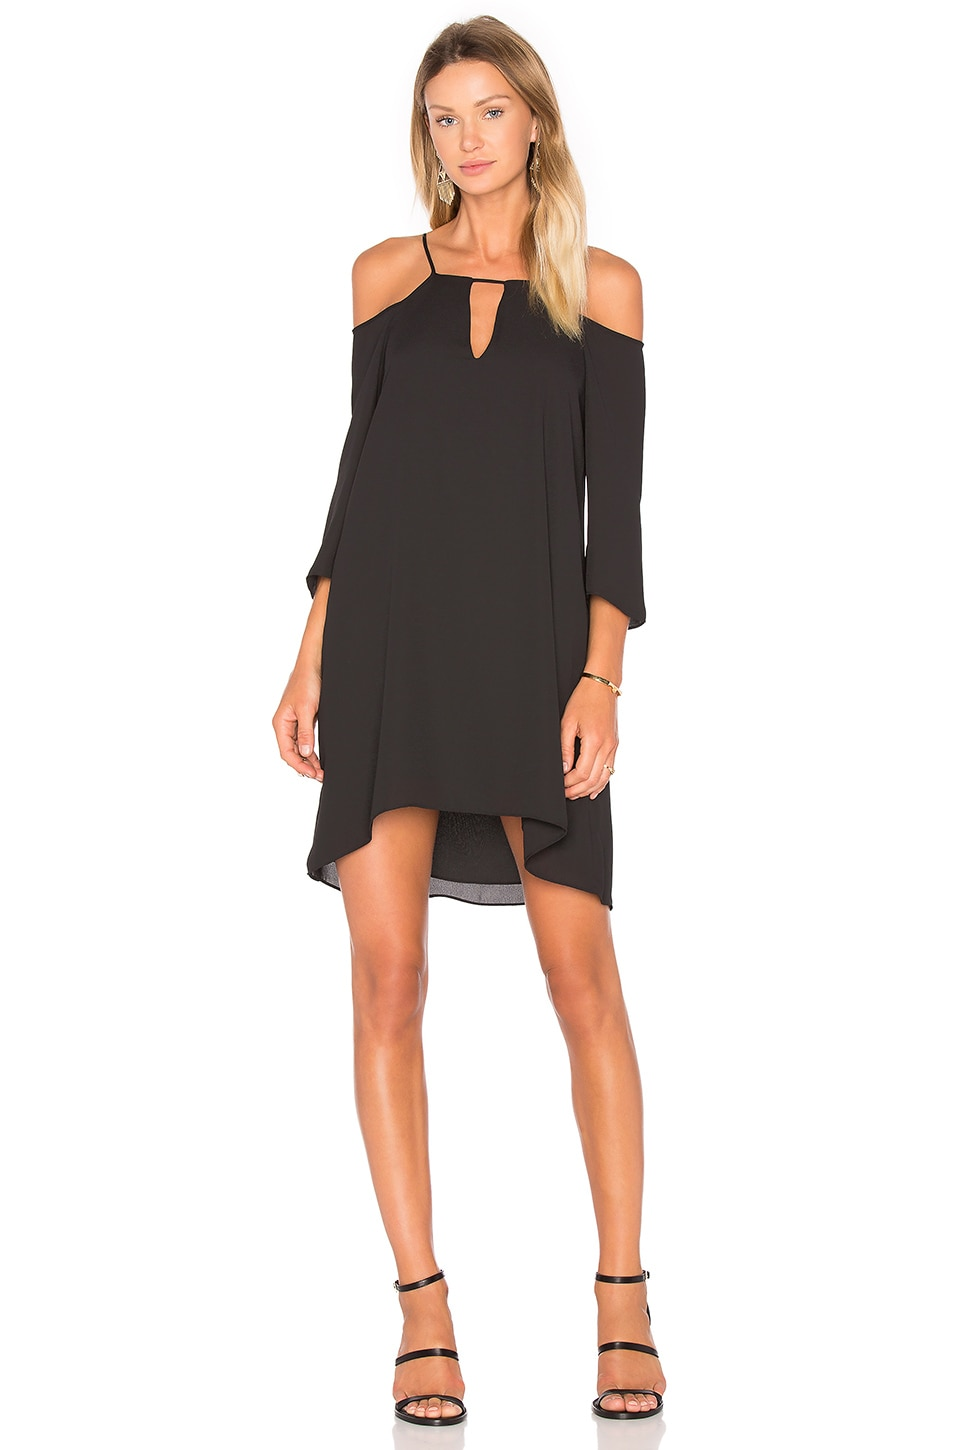 Lilah Cutout Mini Dress